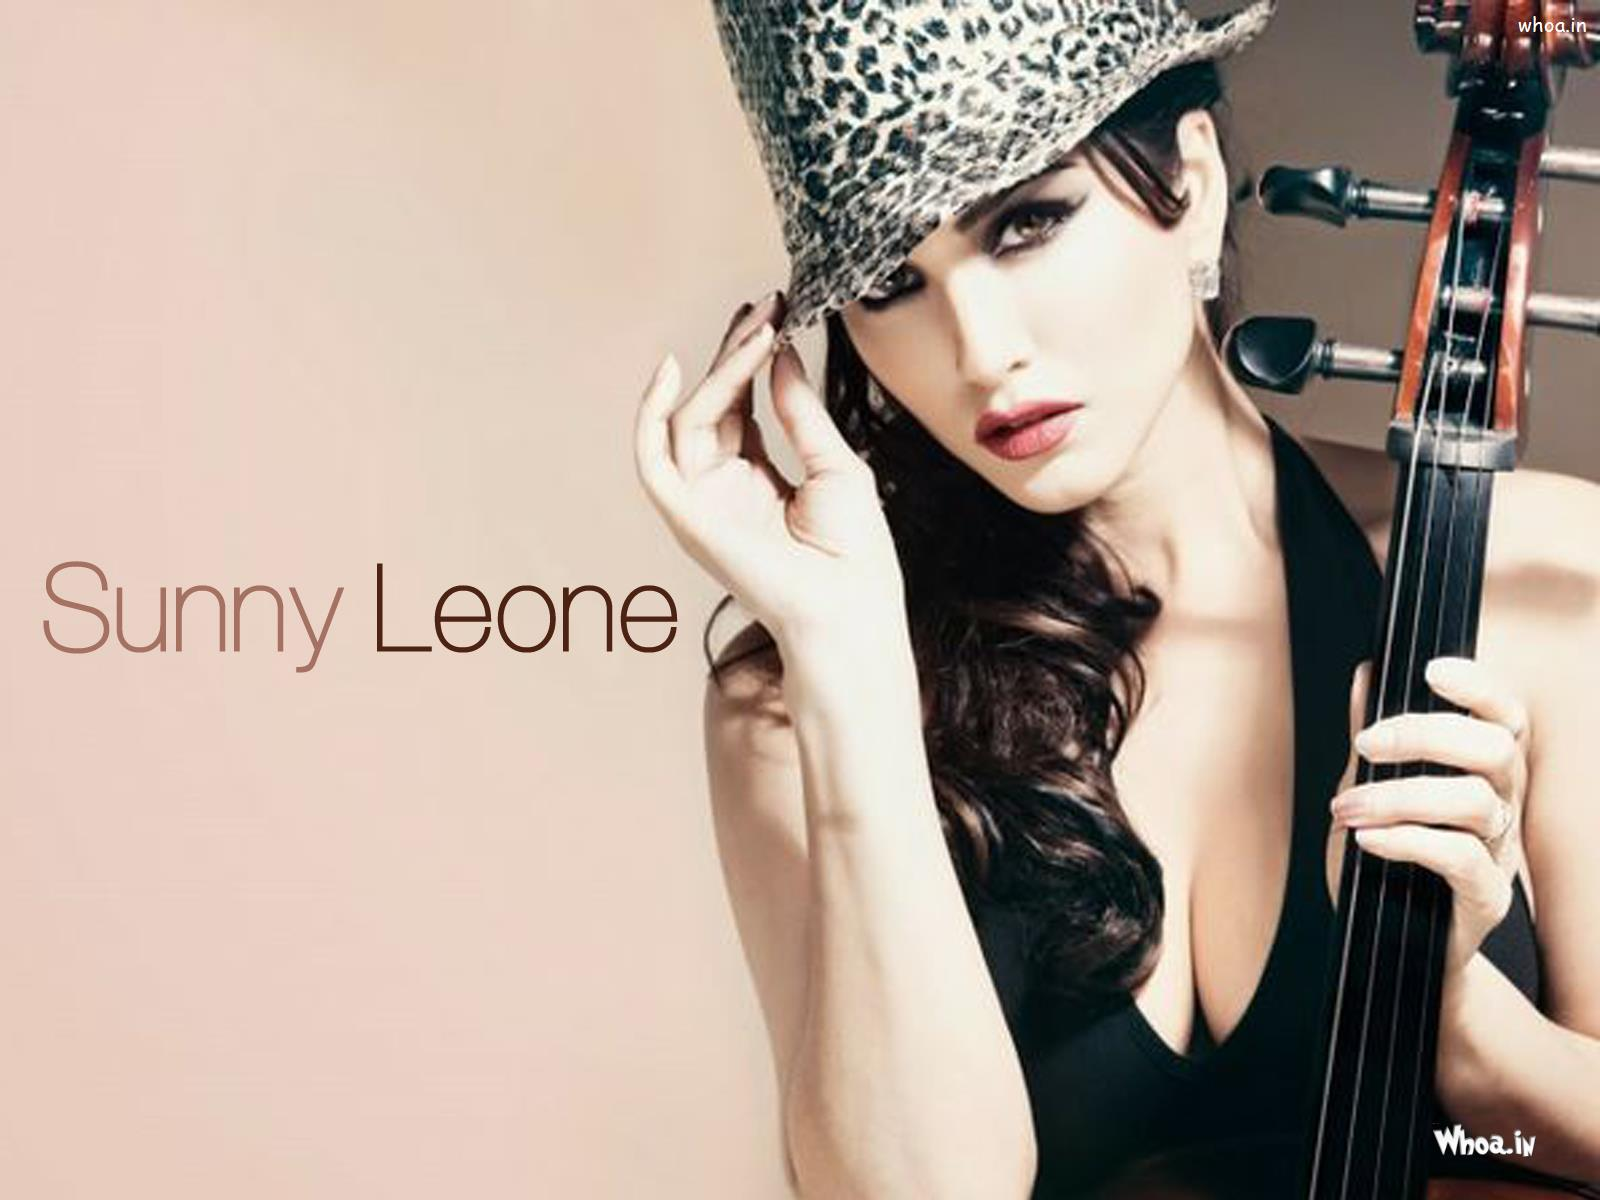 Close Up Sunny Leone With Guitar Hd Wallpaper